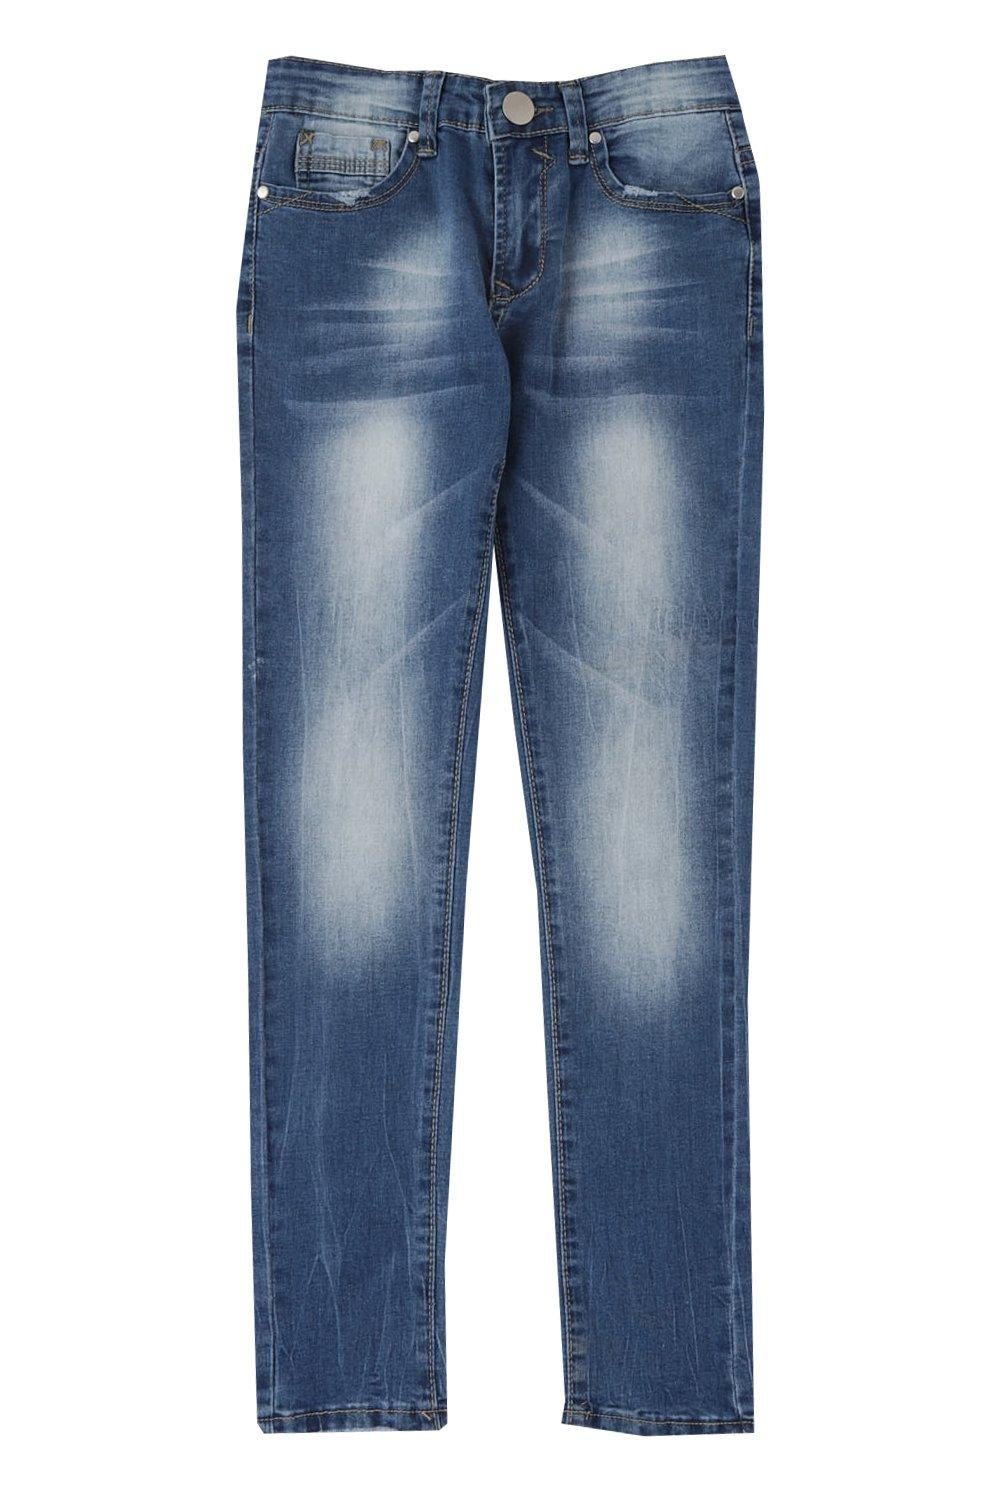 39dff8b0672d7 Boys Skinny Tube Jeans. Hover to zoom